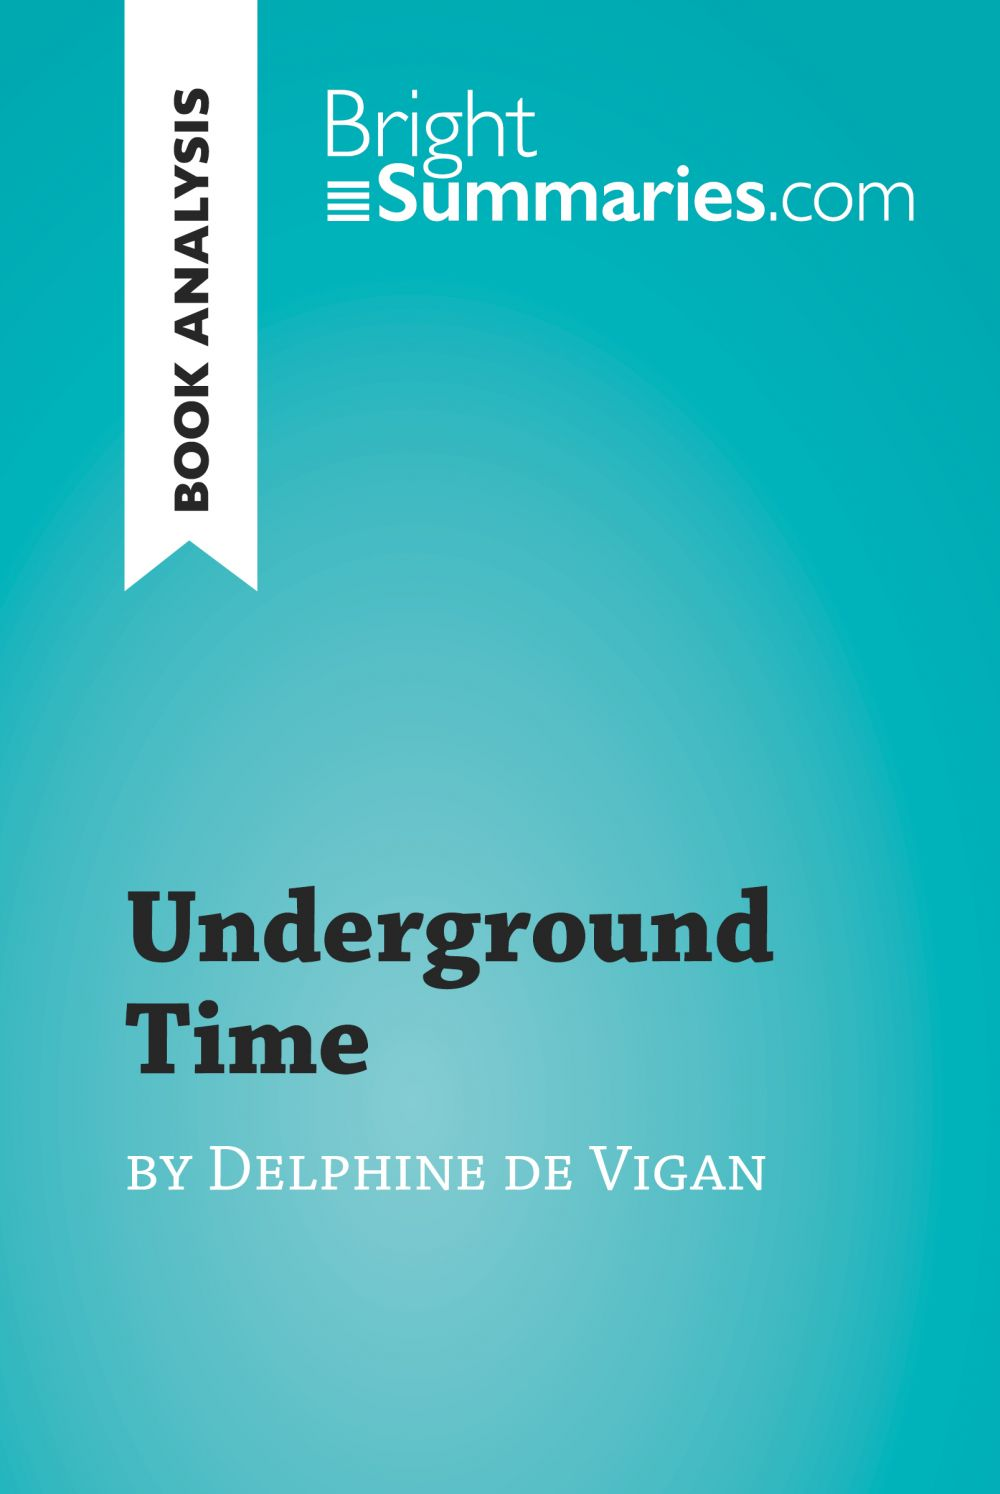 Underground Time by Delphine de Vigan (Book Analysis)